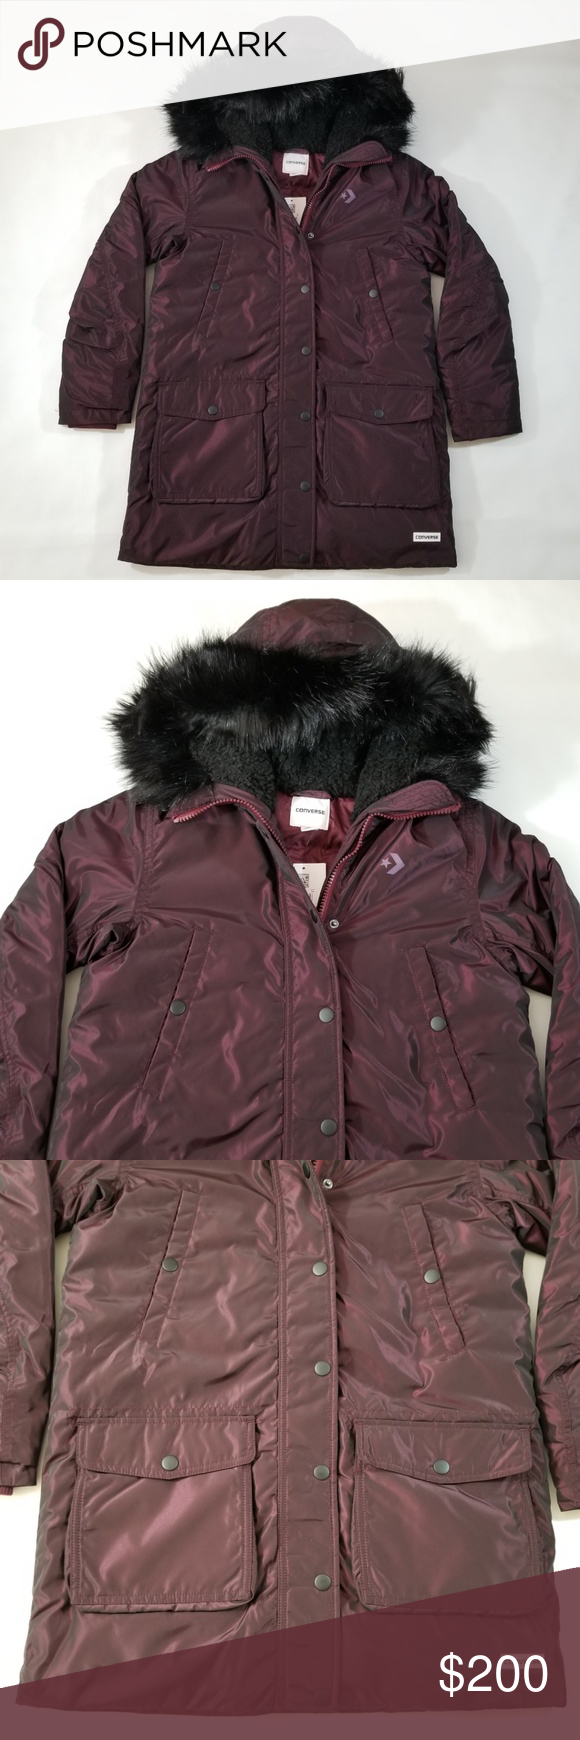 ad61472c65b6 Converse Sideline Down Puffer Parka Jacket Womens Converse Sideline Down  Puffer Parka Jacket Color  Burgundy   Black Approximate Measurements   Women s Small ...